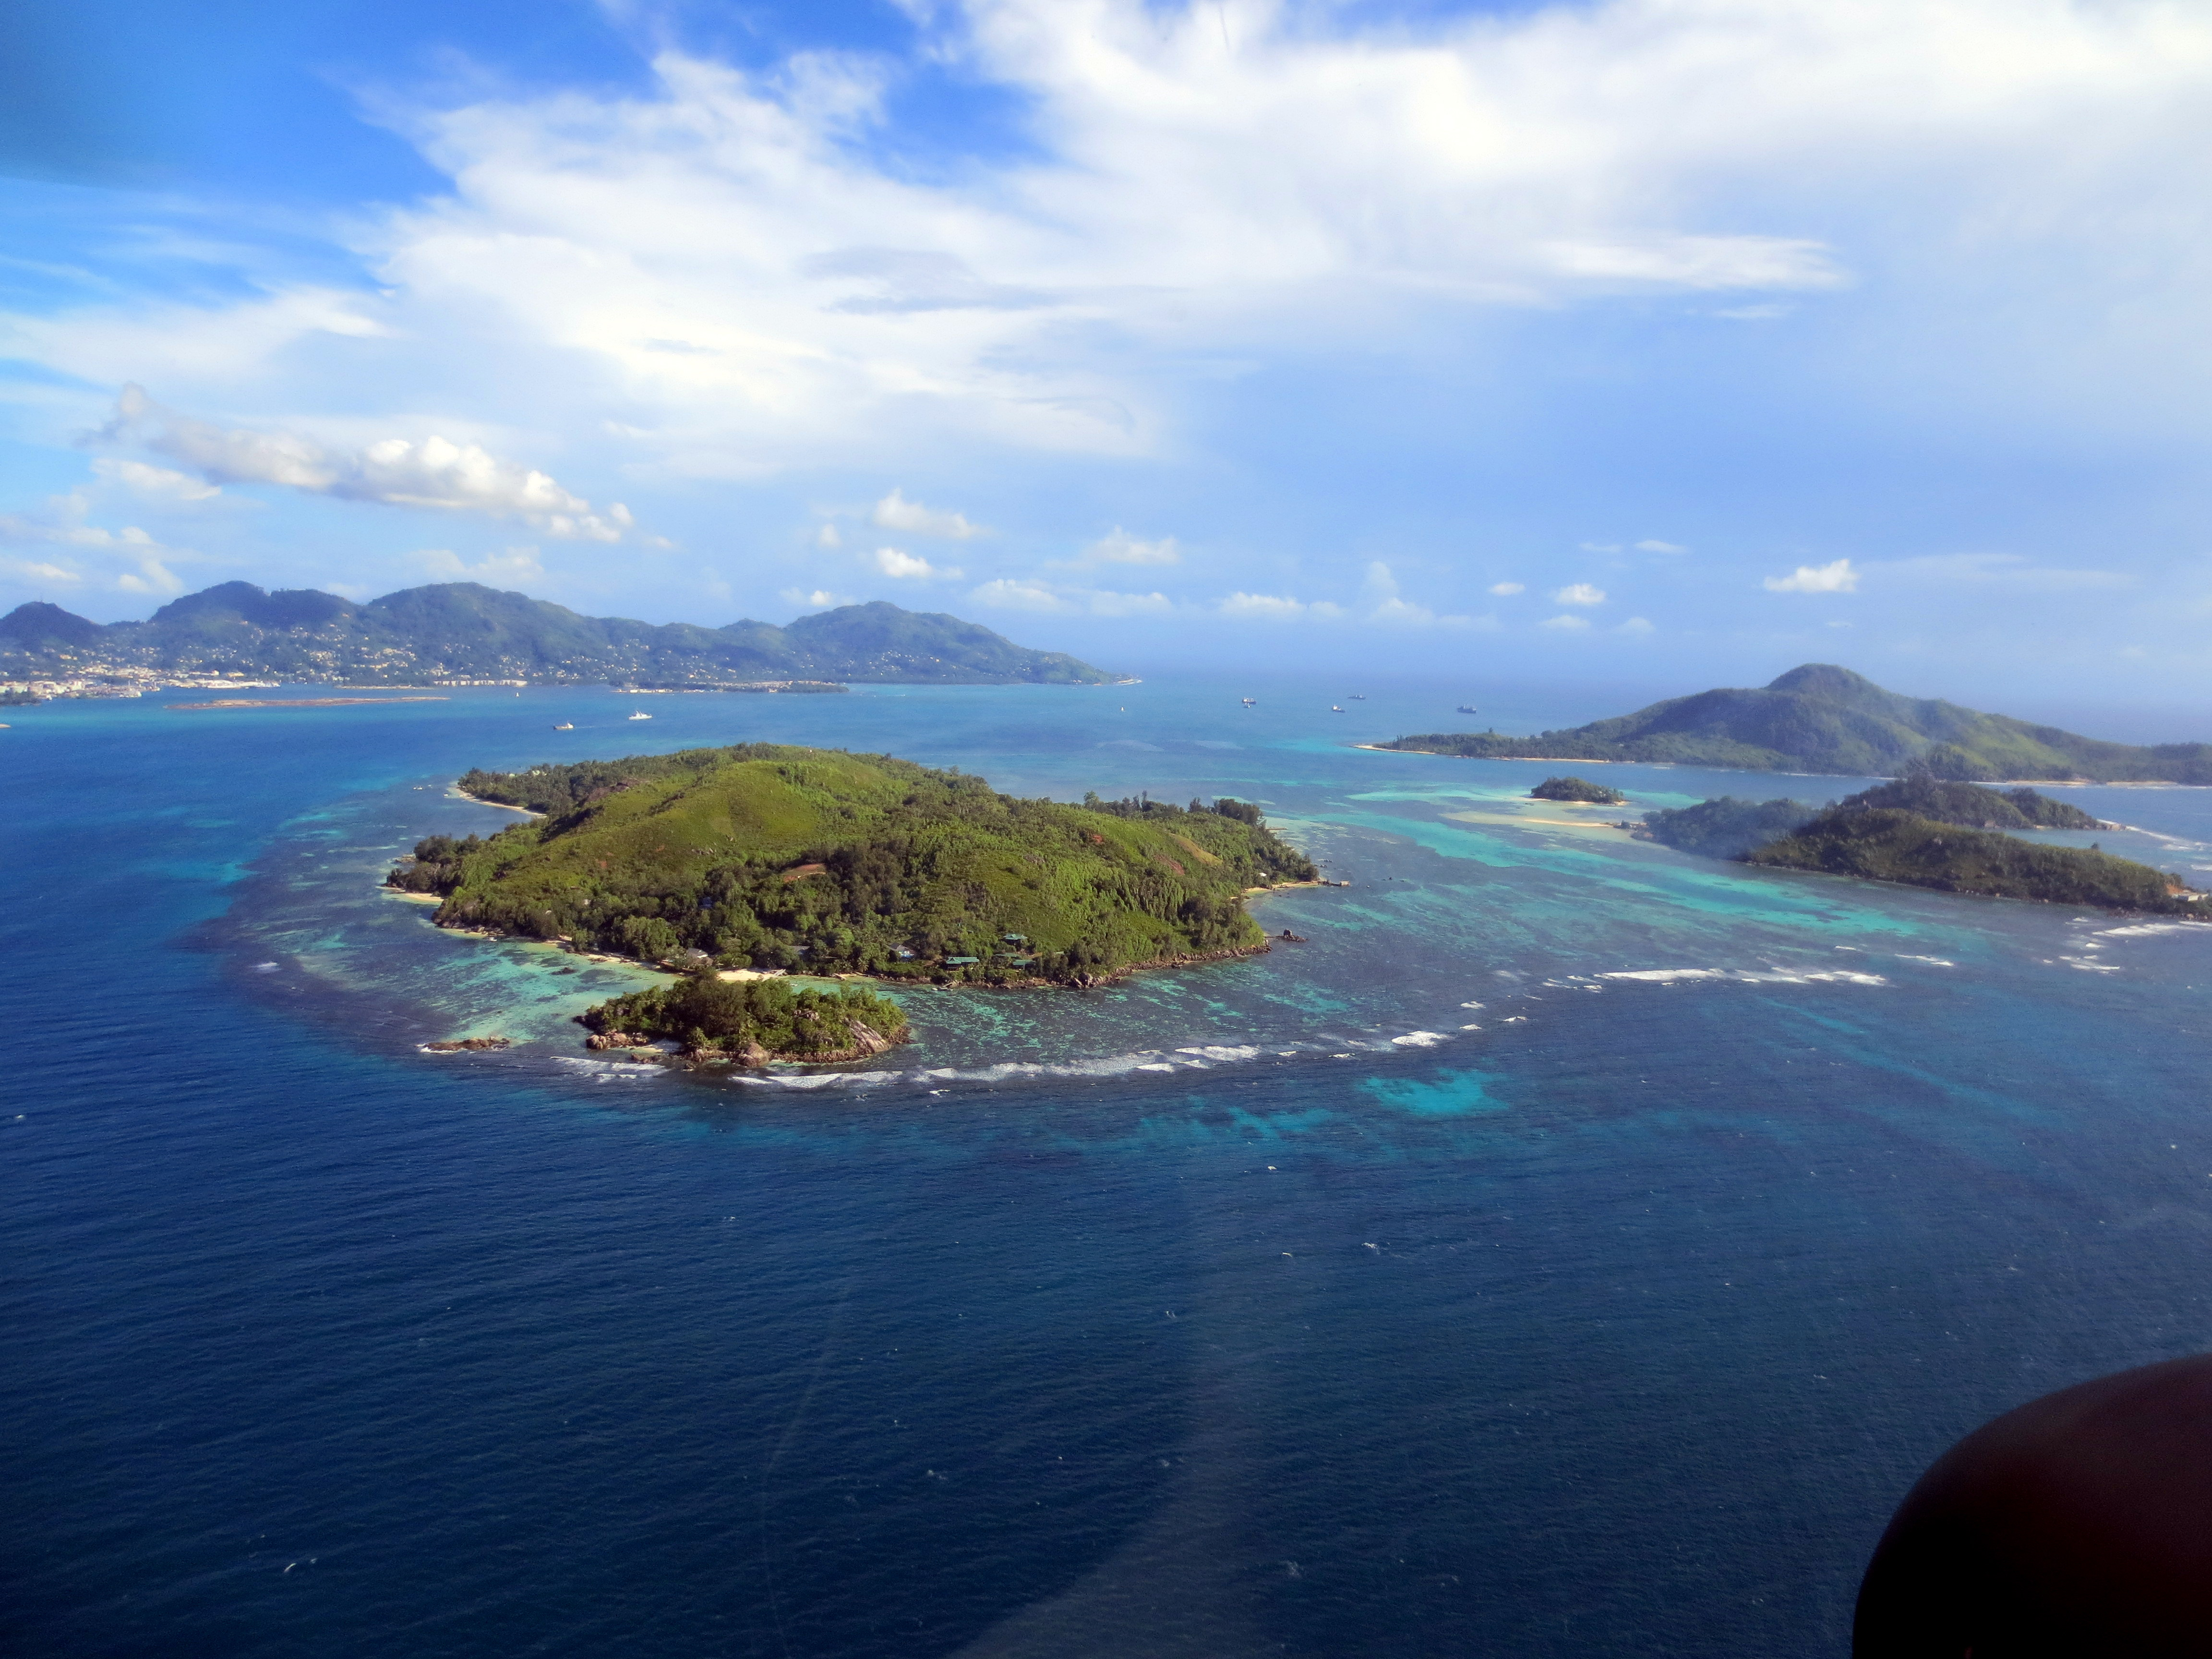 1000 images about eden island on pinterest seychelles garden of eden and - Eden island seychelles ...